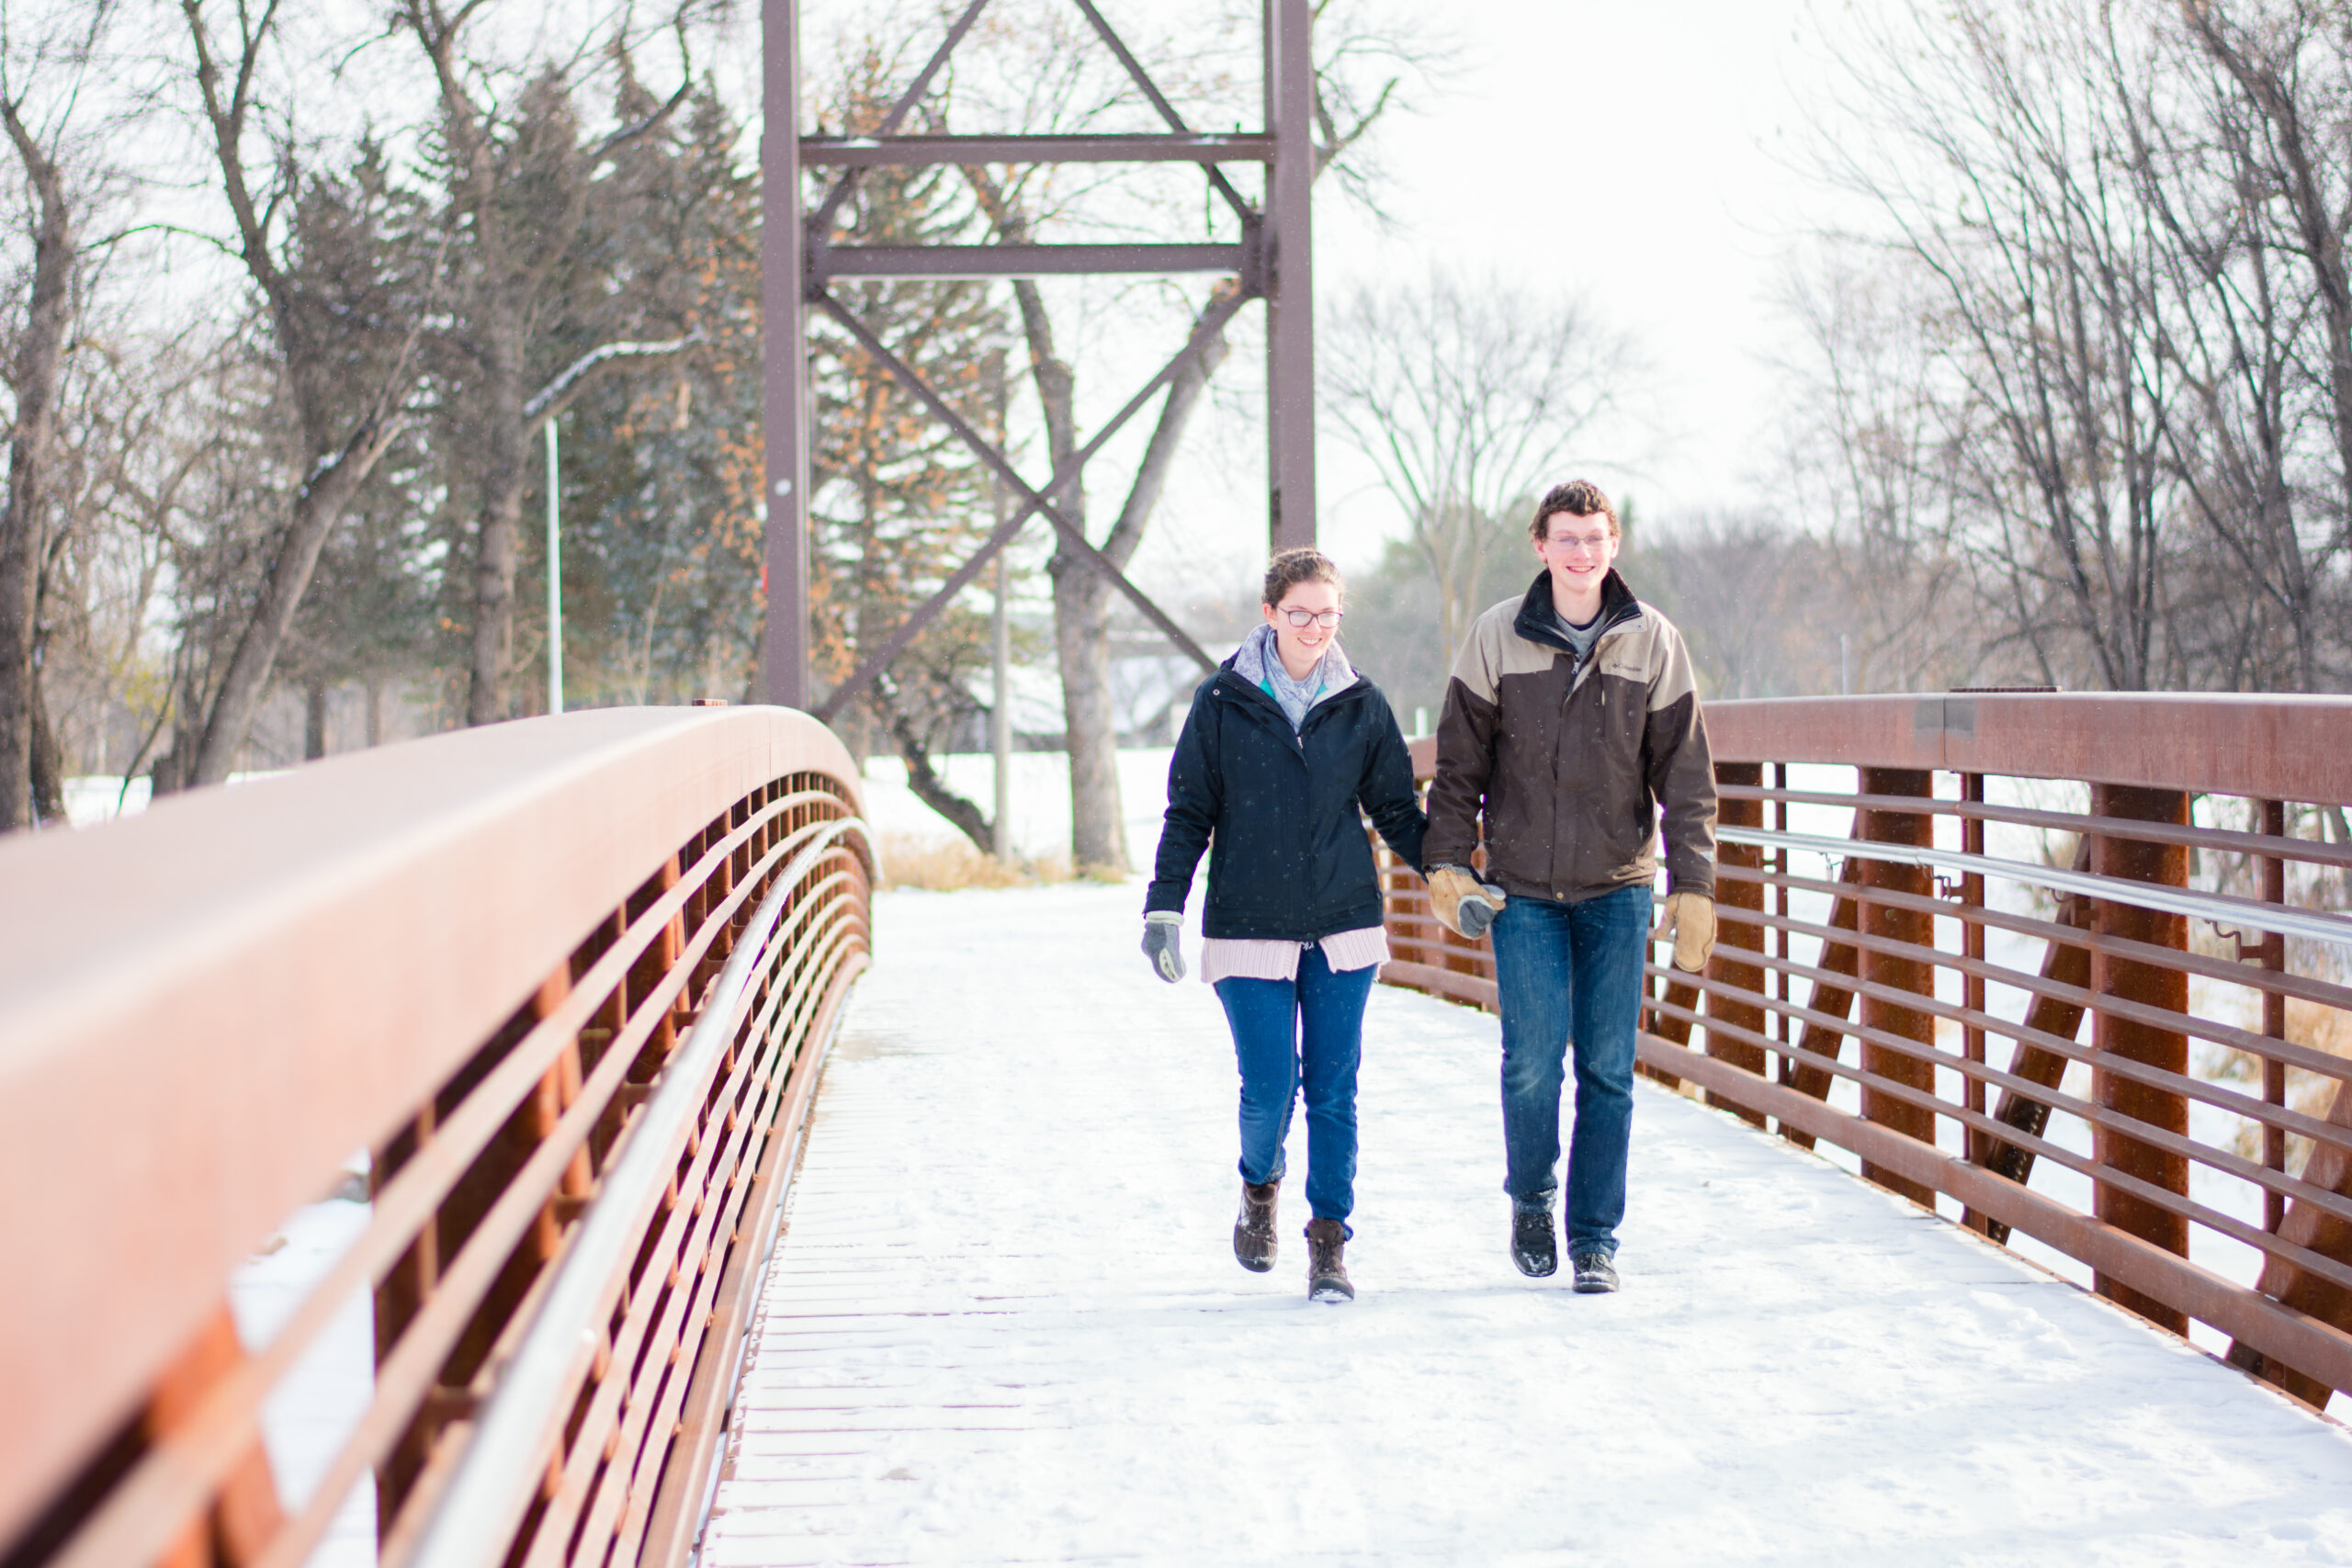 DSC 0025 scaled - Best Places to Take Engagement Photos in Fargo North Dakota